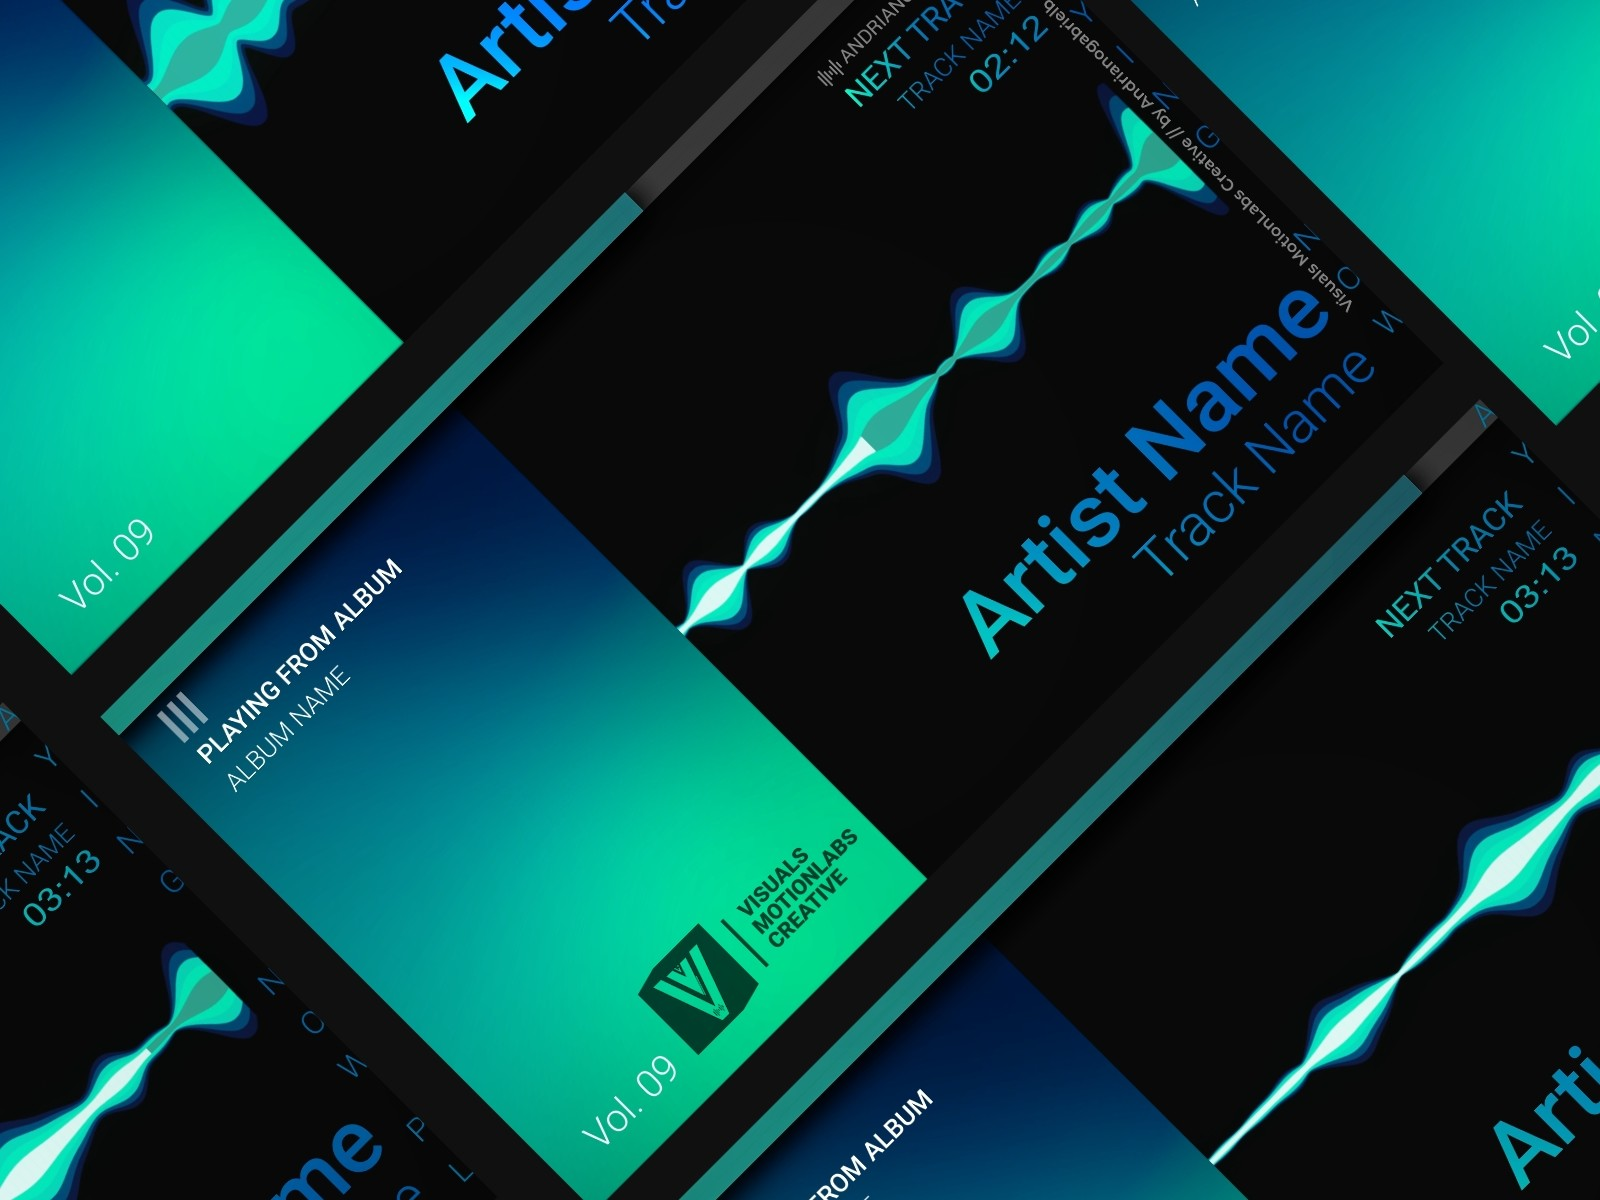 Audio Spectrum / Music Visualizer Concept S9 (Harmonic Colors) by Gabriel  Andriano B  (Andrianogabrielb)